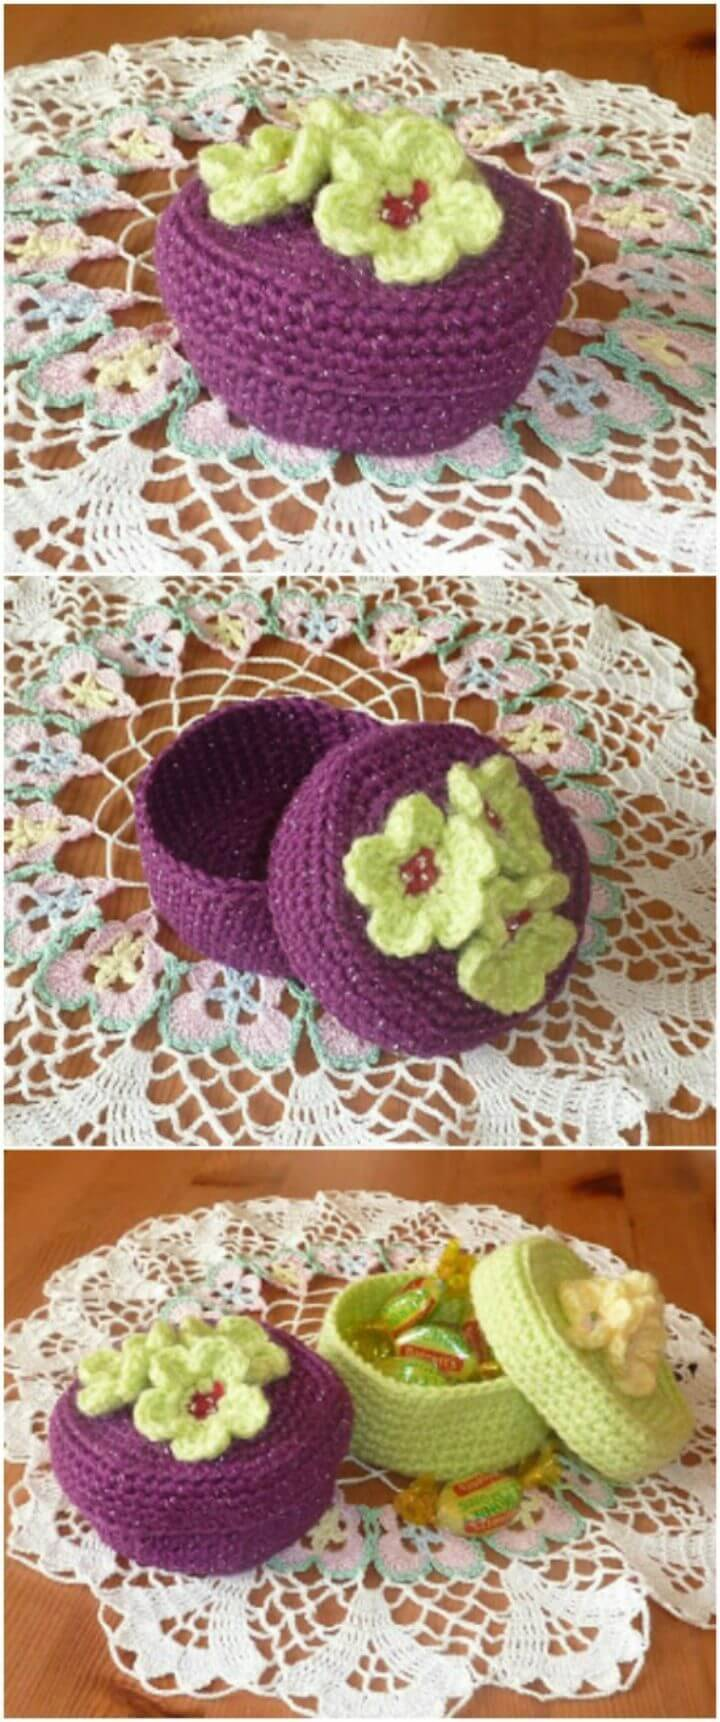 Make Your Own Crochet Trinket Boxes